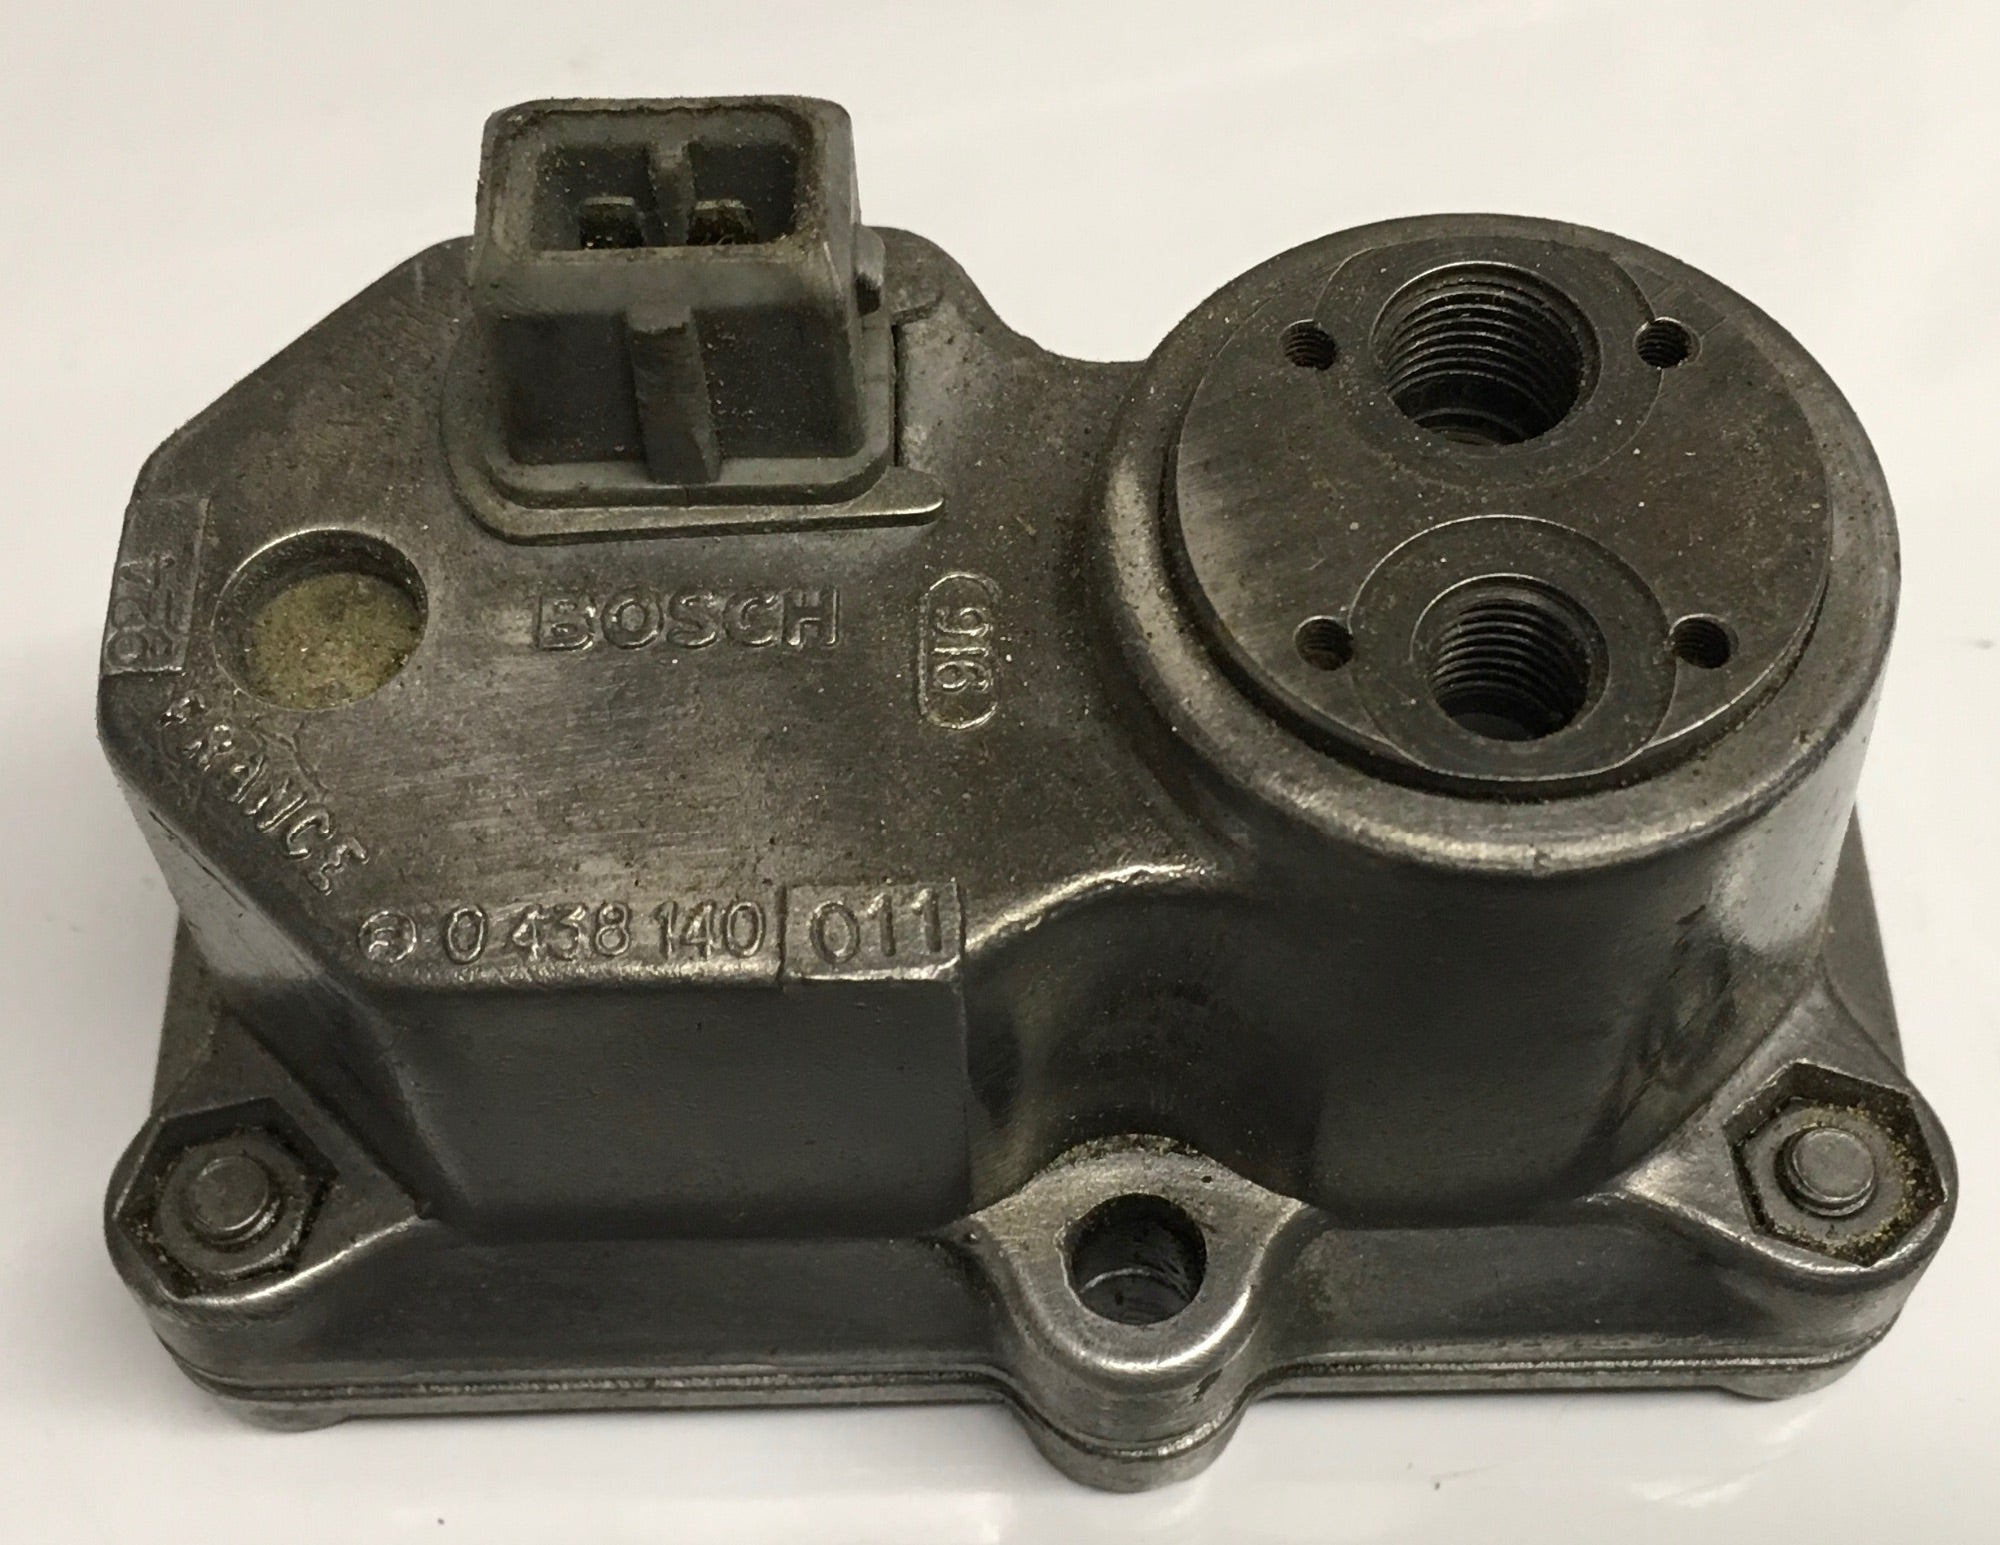 Porsche 924 warm up regulator (WUR) Bosch 0 438 140 011. ((Ref Green 5)) - Porsche Spares UK Ltd